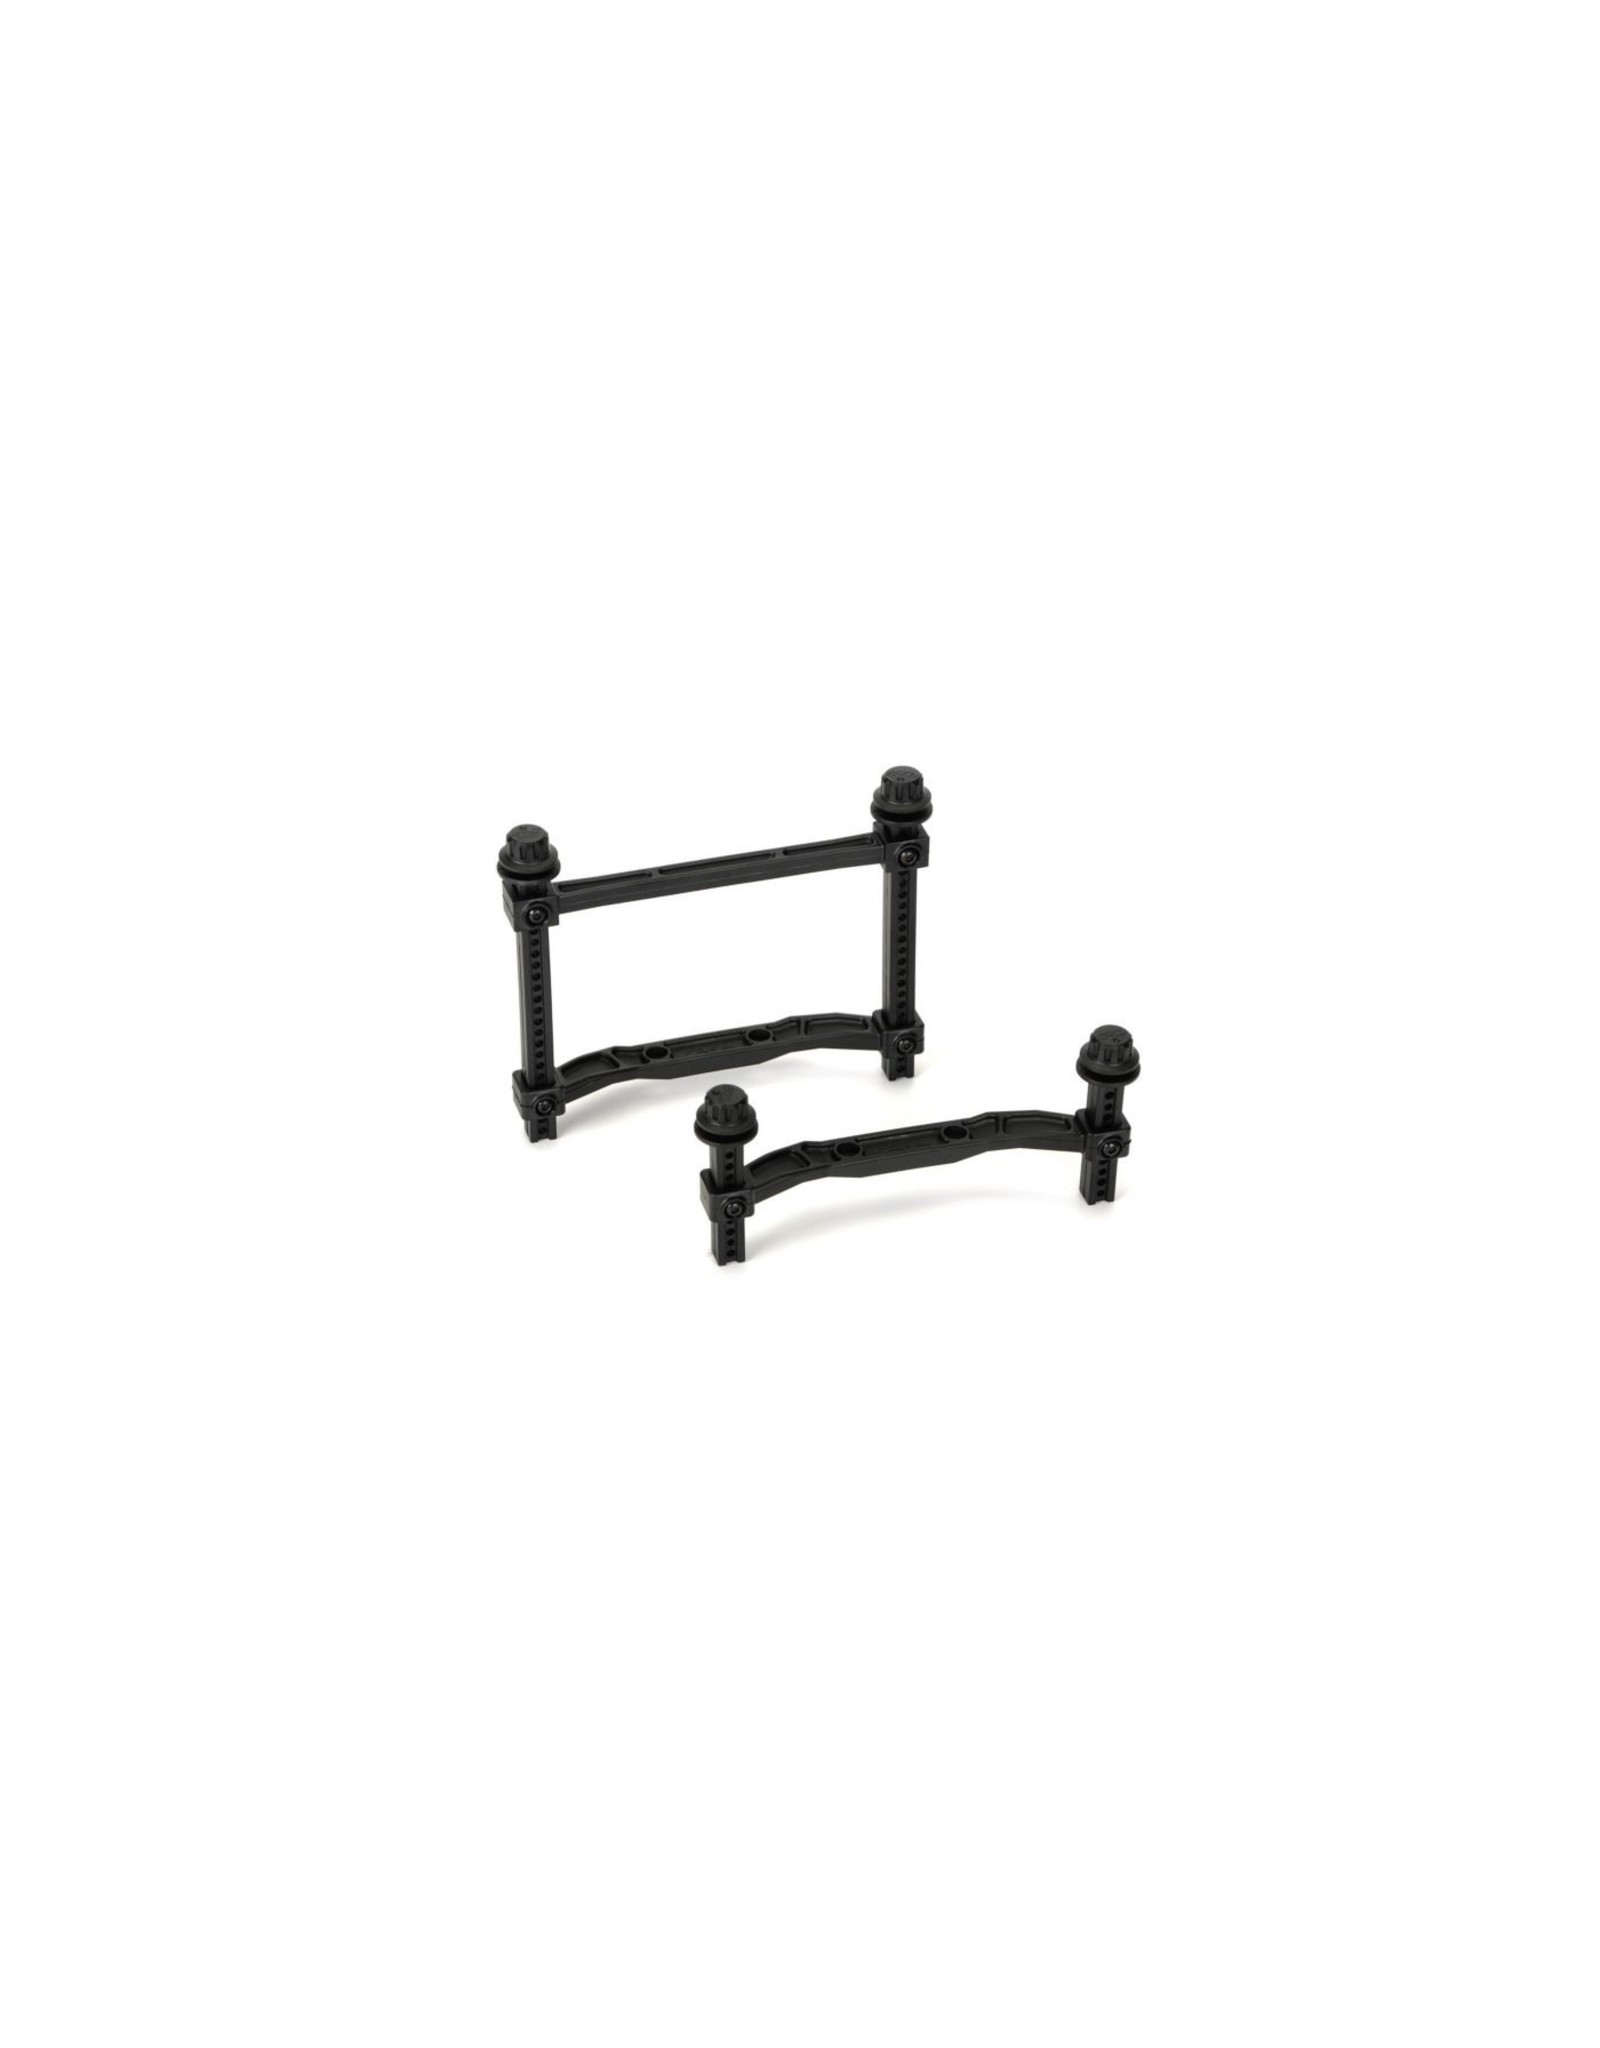 Pro-Line Racing Extended Front and Rear Body Mounts: SLH 4x4  (PRO608700)